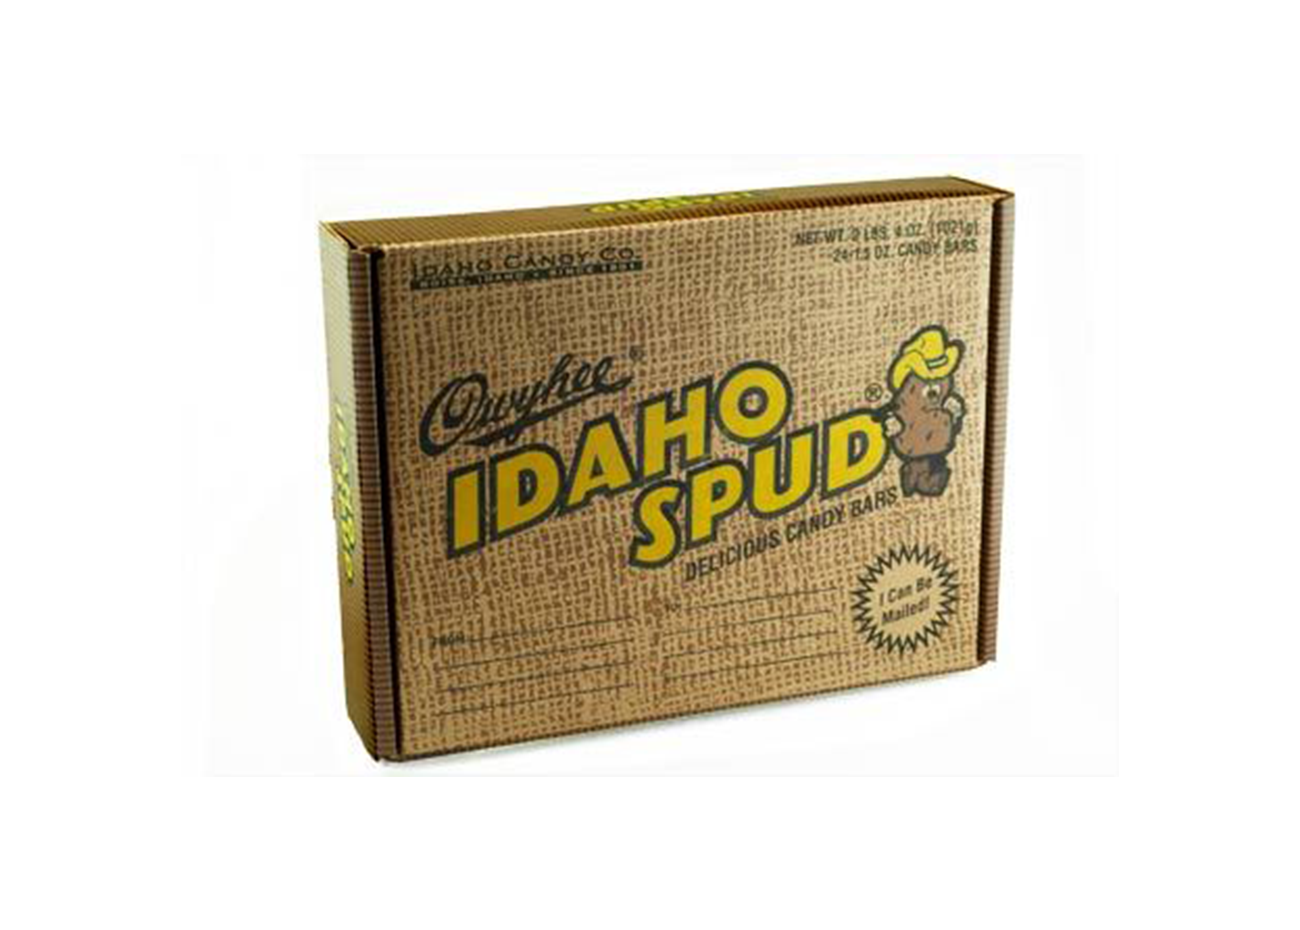 Idaho Candy Company Idaho Spud Candy Bars